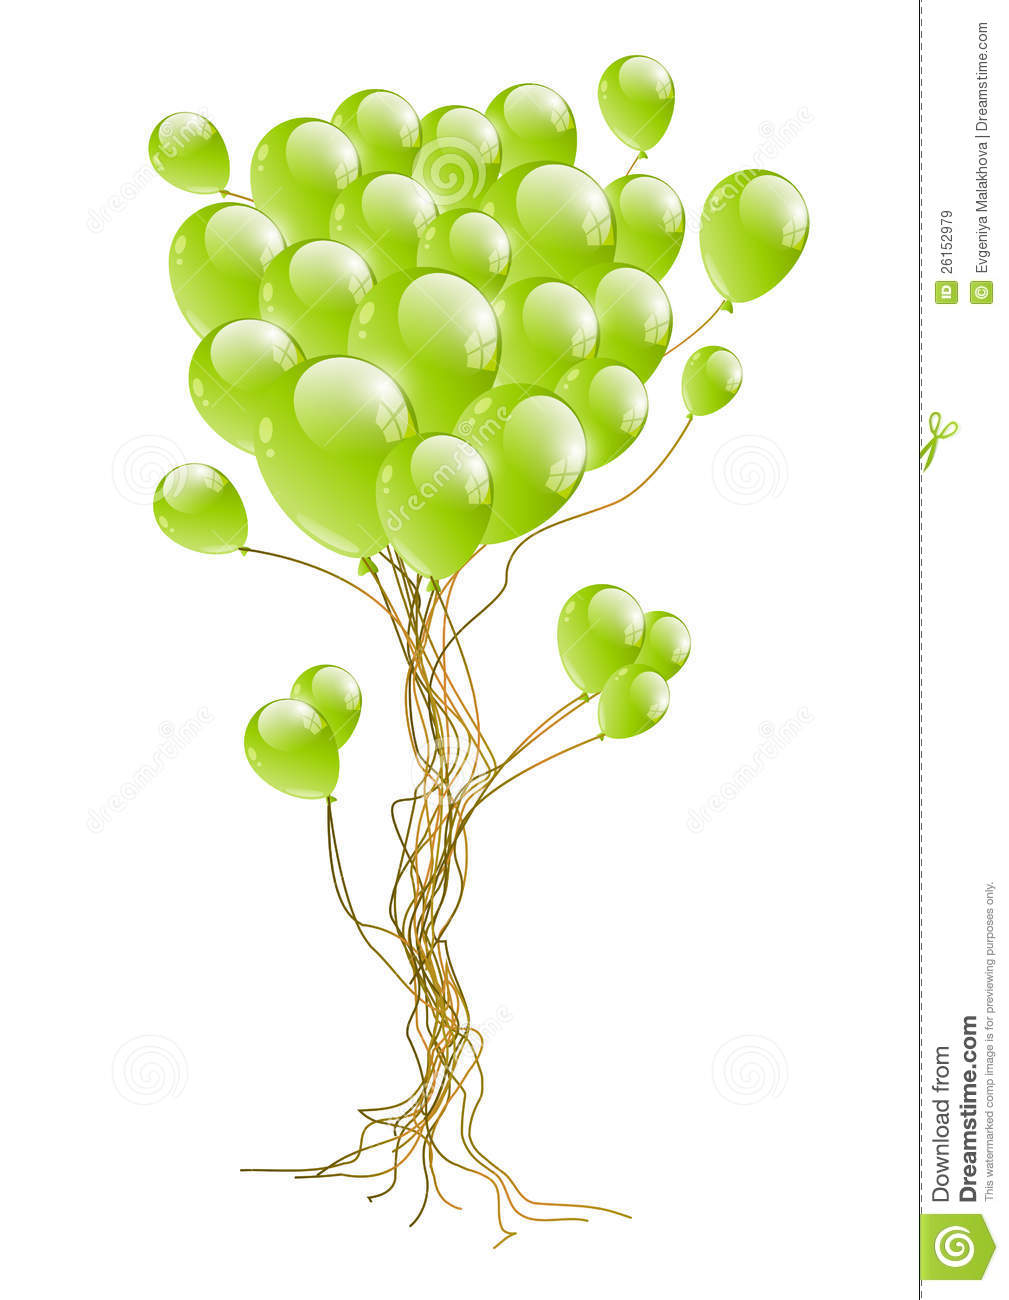 Balloon Tree Royalty Free Stock Images.